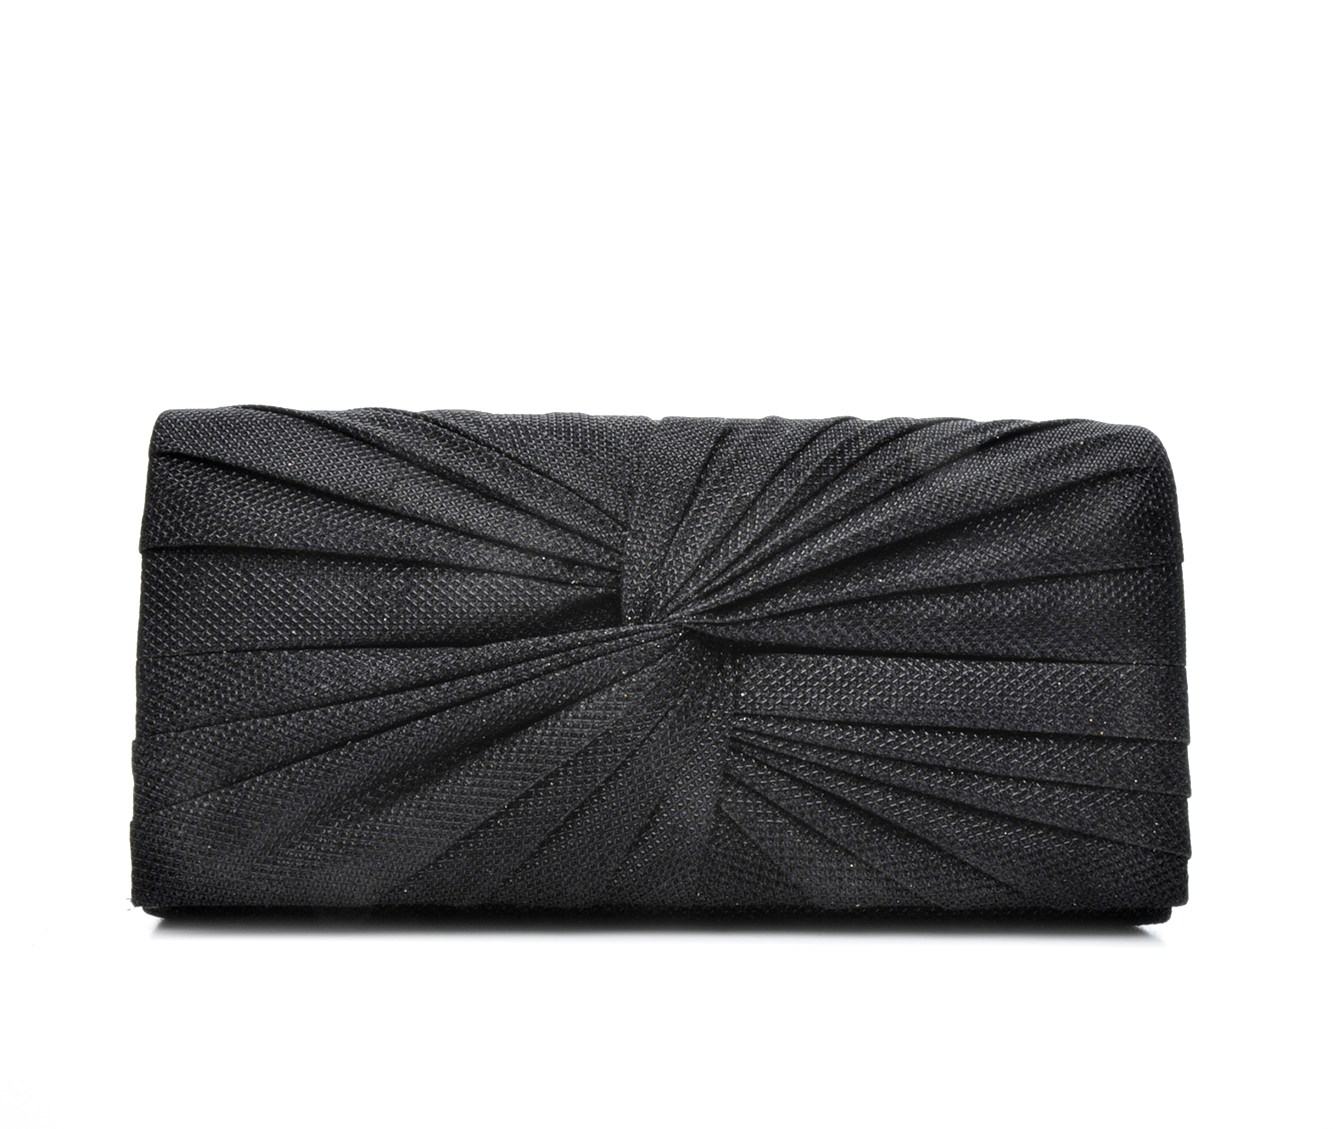 Four Seasons Handbags Large Metallic Evening Clutch (Black)